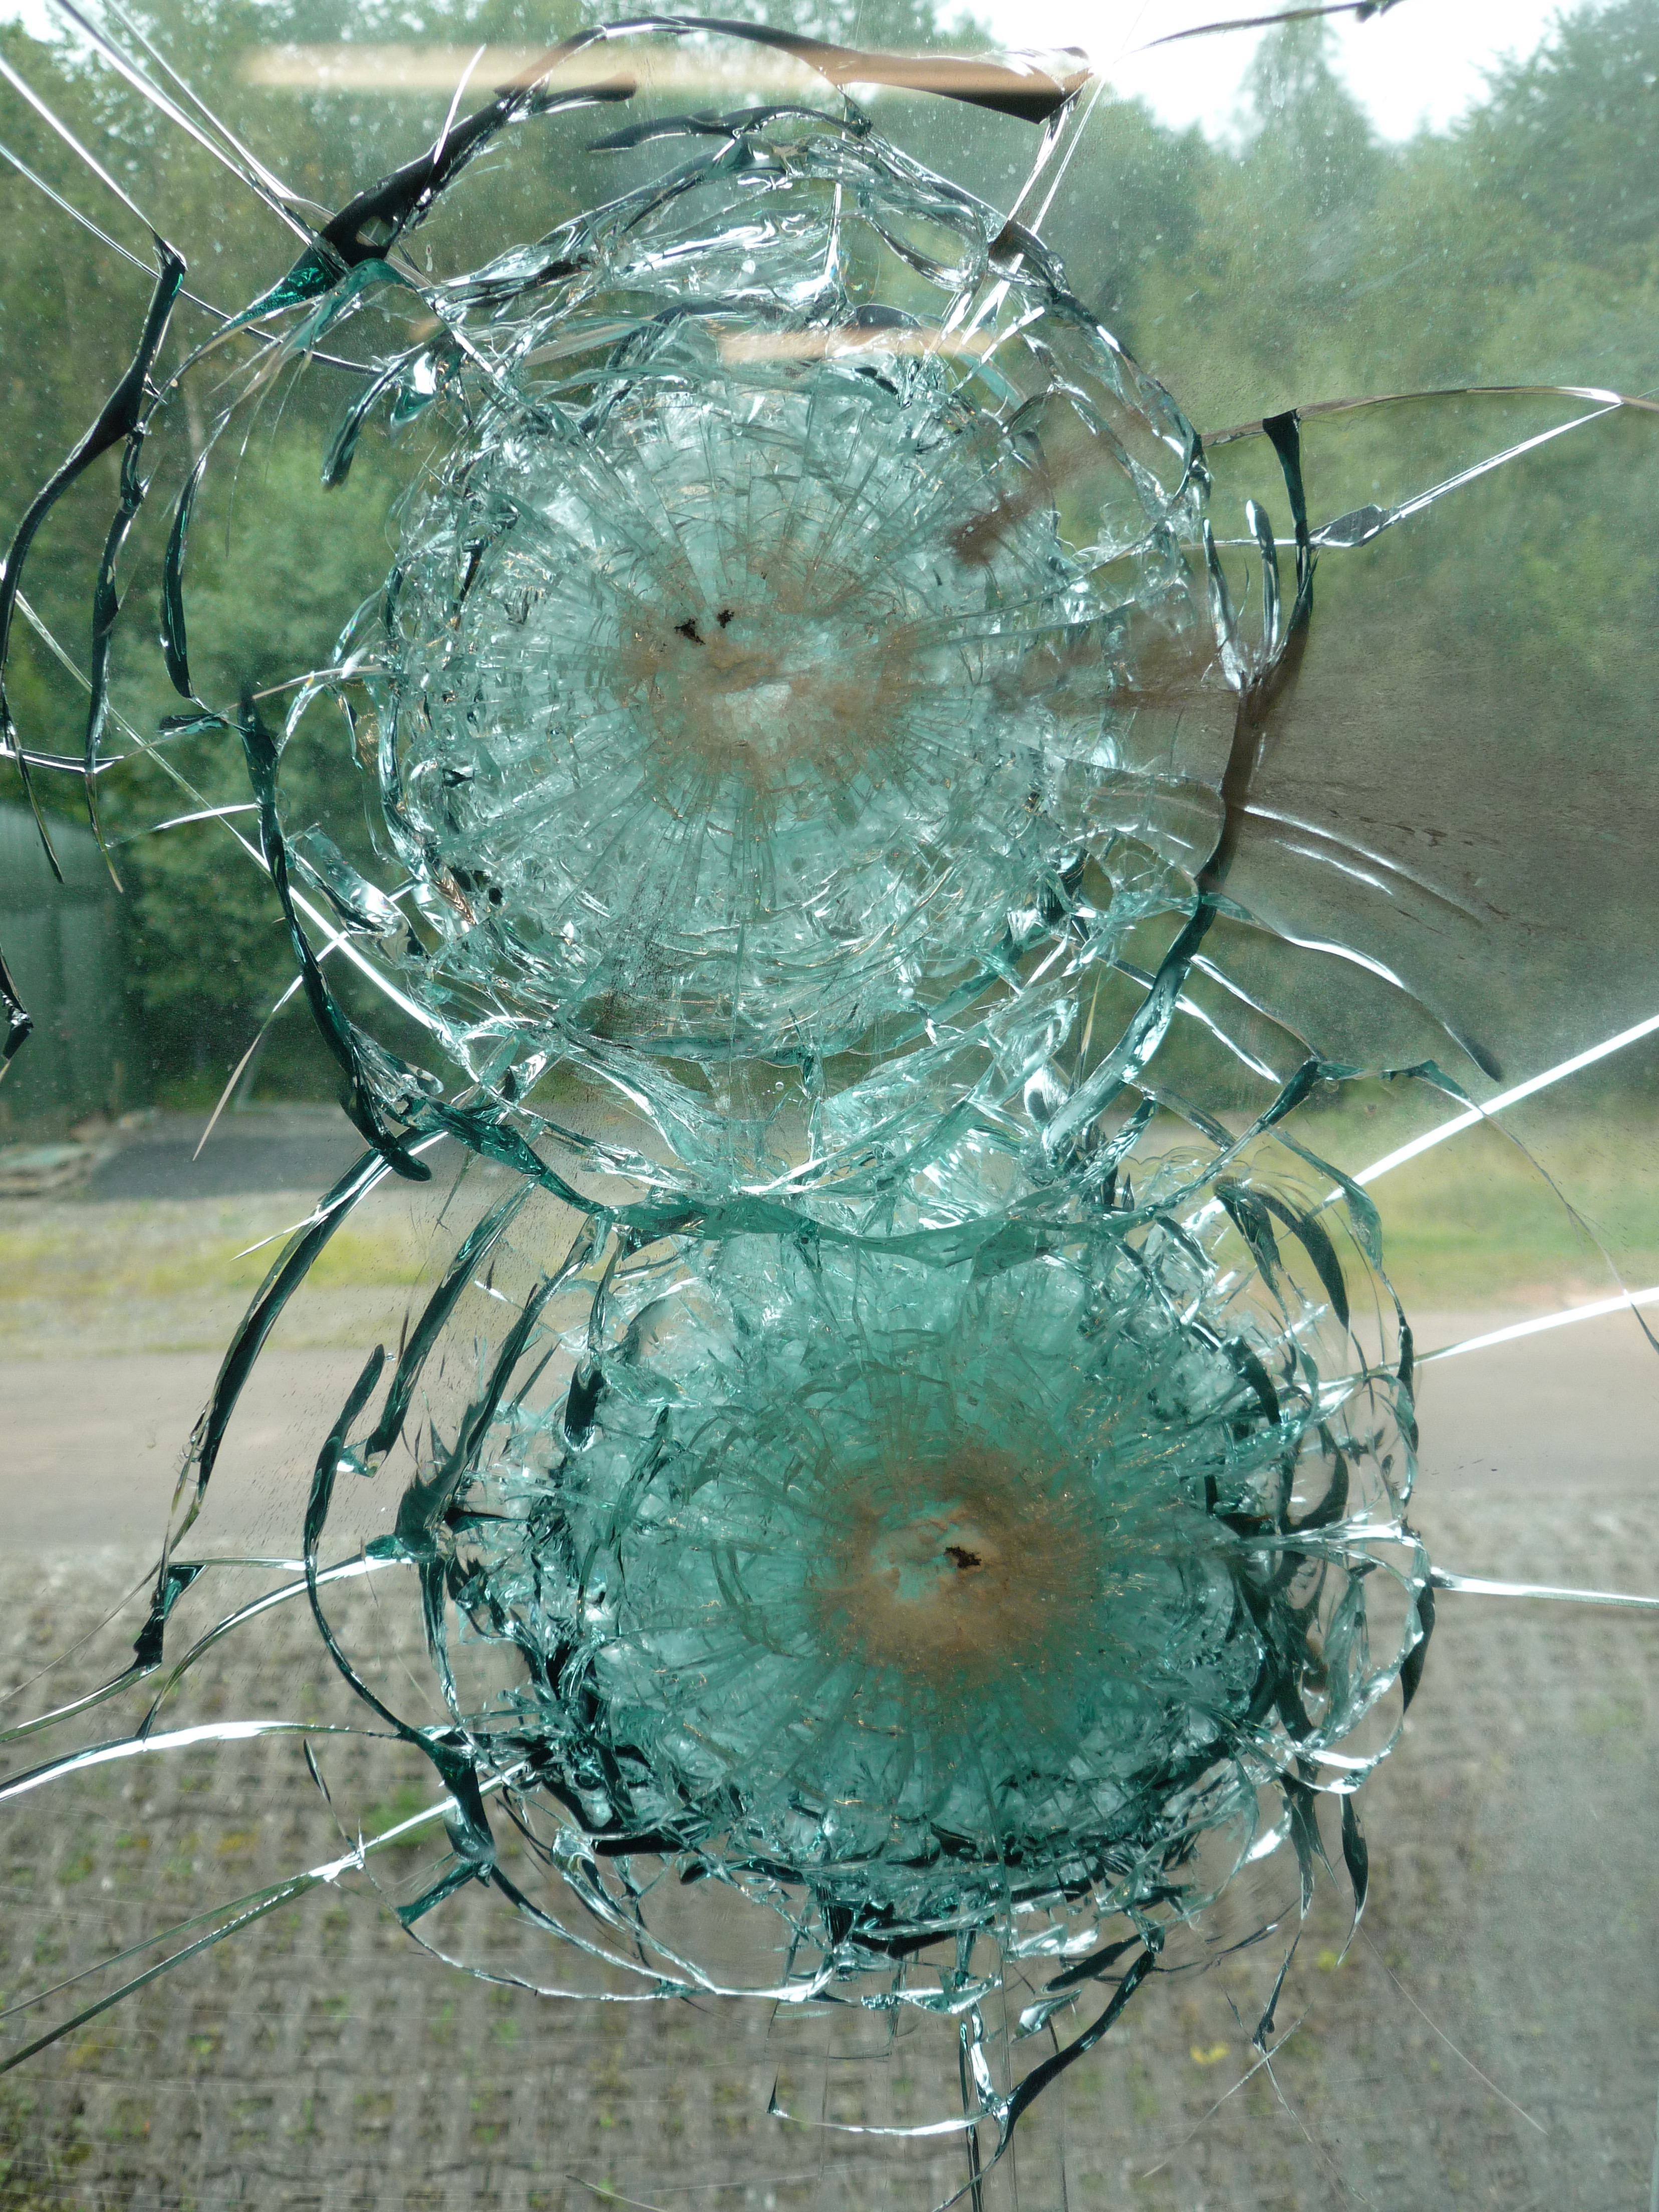 bullet resistant glass after impact from ammunition.